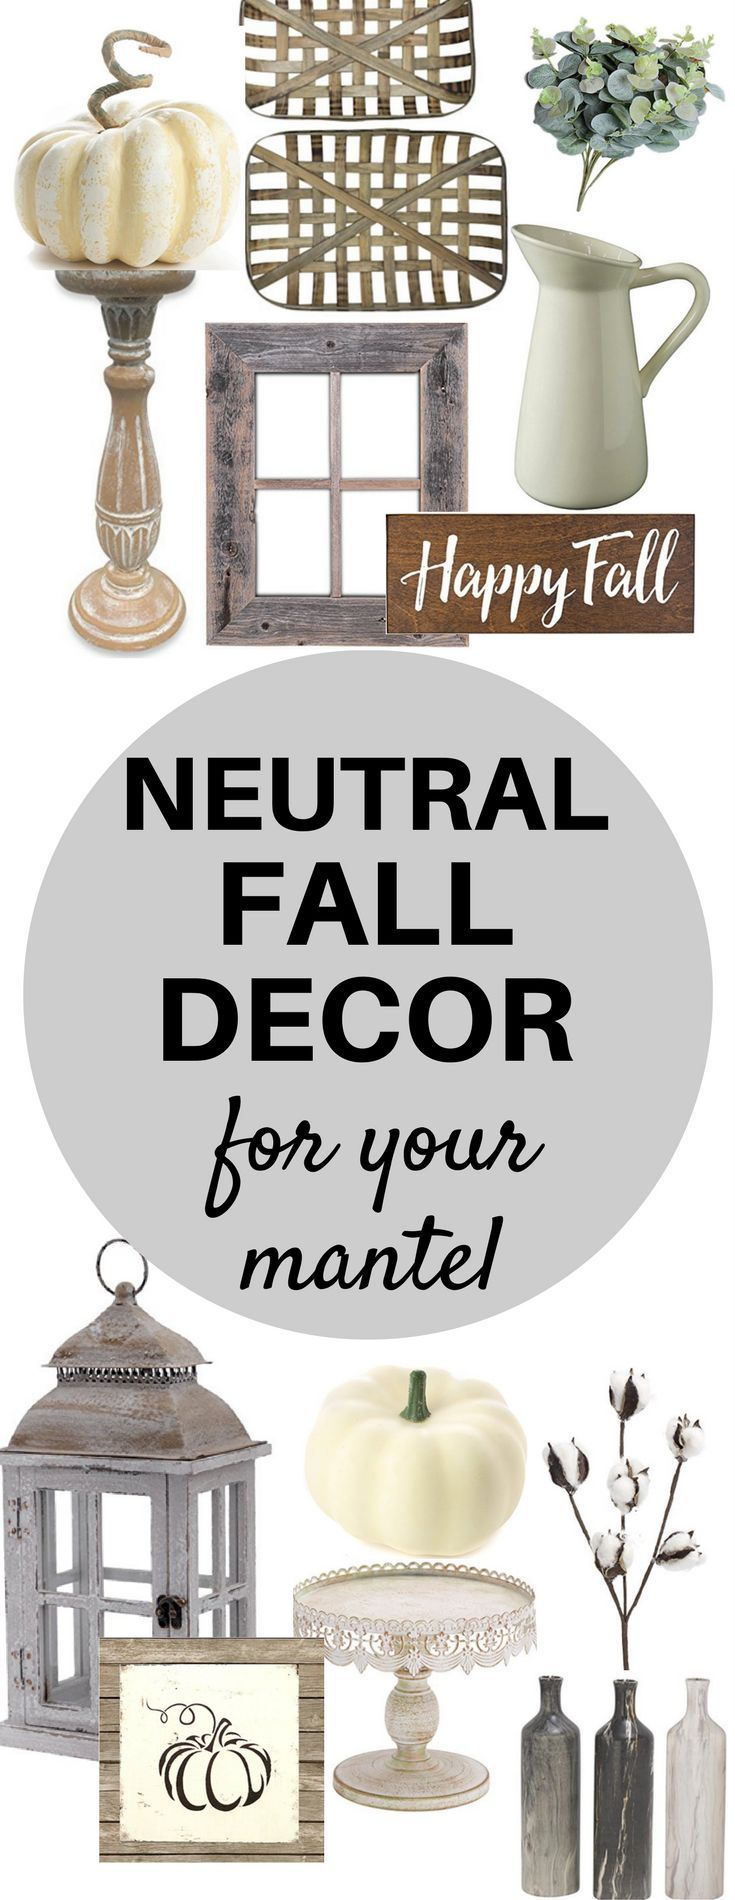 A Brick Home: Neutral fall decor ideas | white pumpkins | neutral fall living room decor | farmhouse fall decor | fall ideas | fall decor | Mantel decor | fall mantel ideas